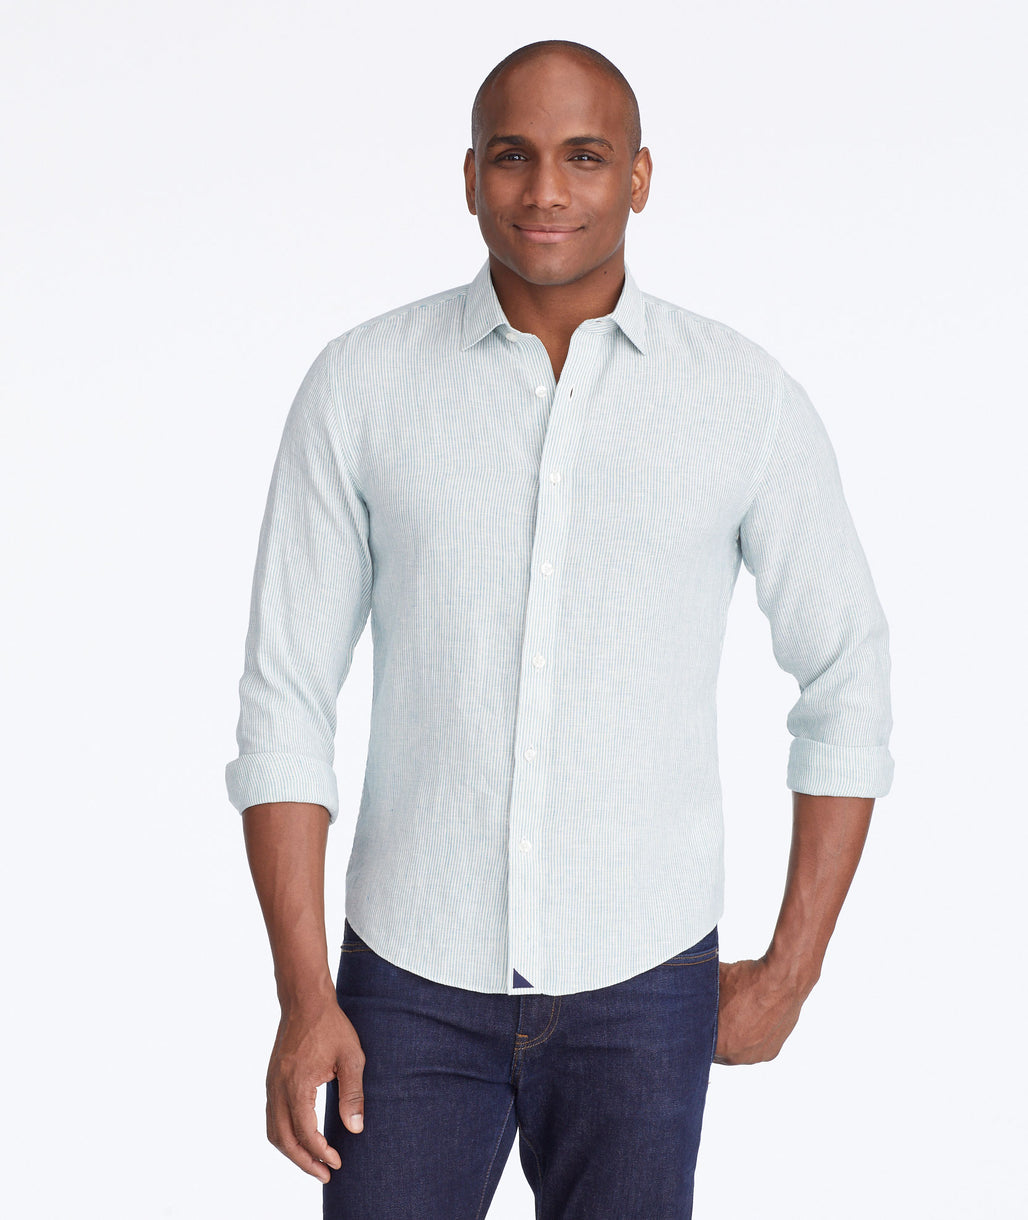 Model wearing a Green Wrinkle-Resistant Linen Tercos Shirt